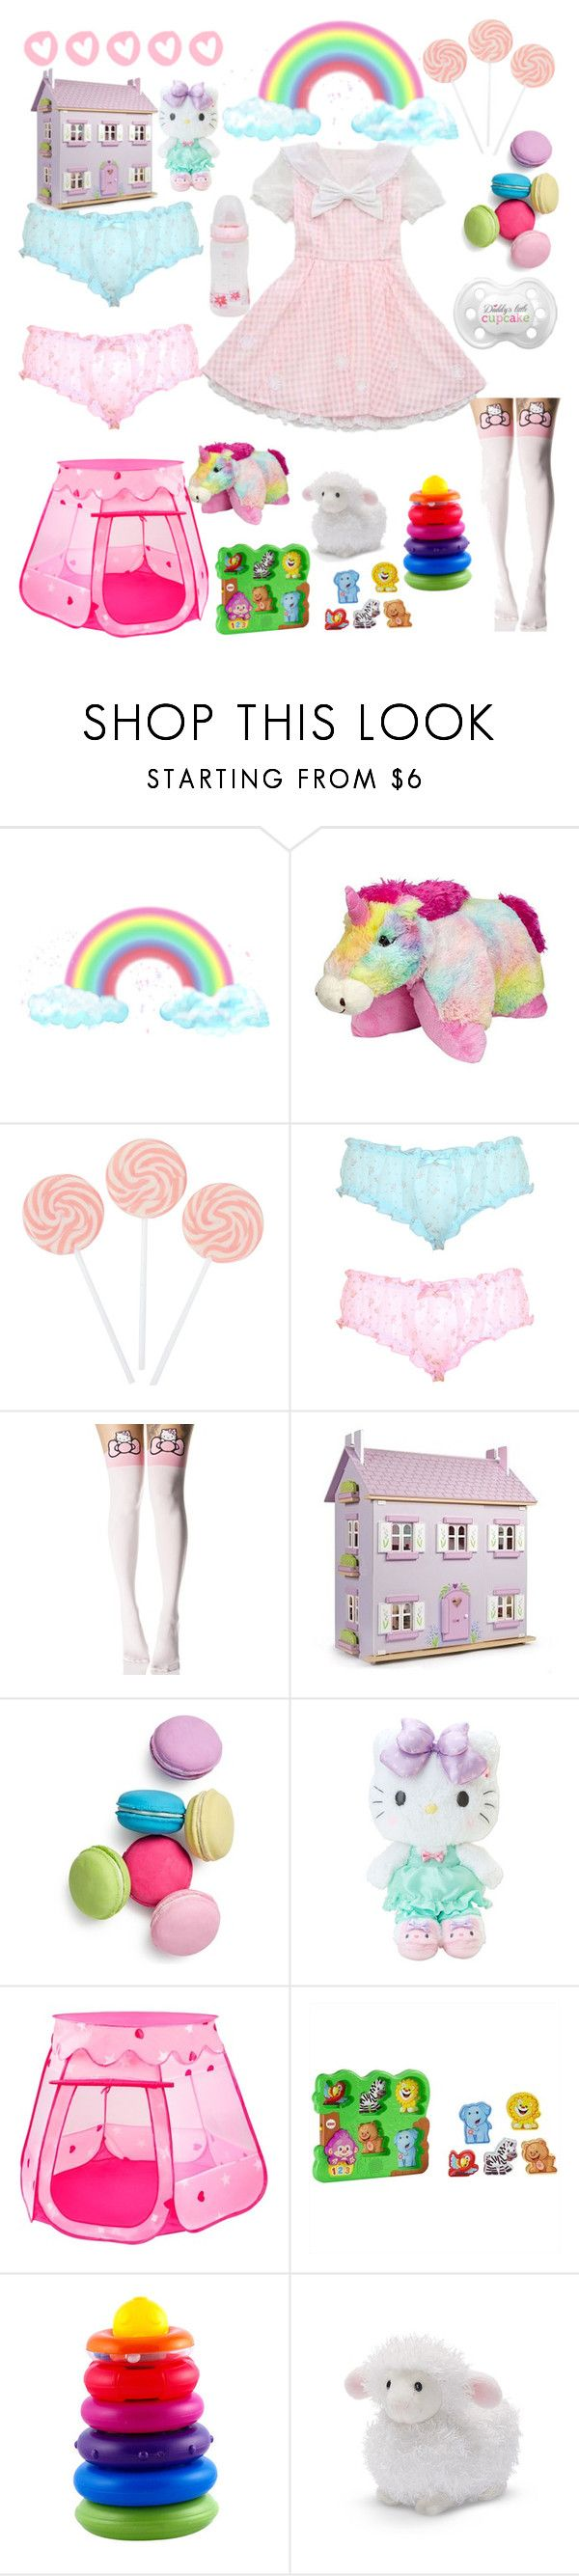 """""""Fun :)"""" by rinnalin ❤ liked on Polyvore featuring Playtex, Leg Avenue, Le Toy Van, Two's Company, Hello Kitty and Gund"""